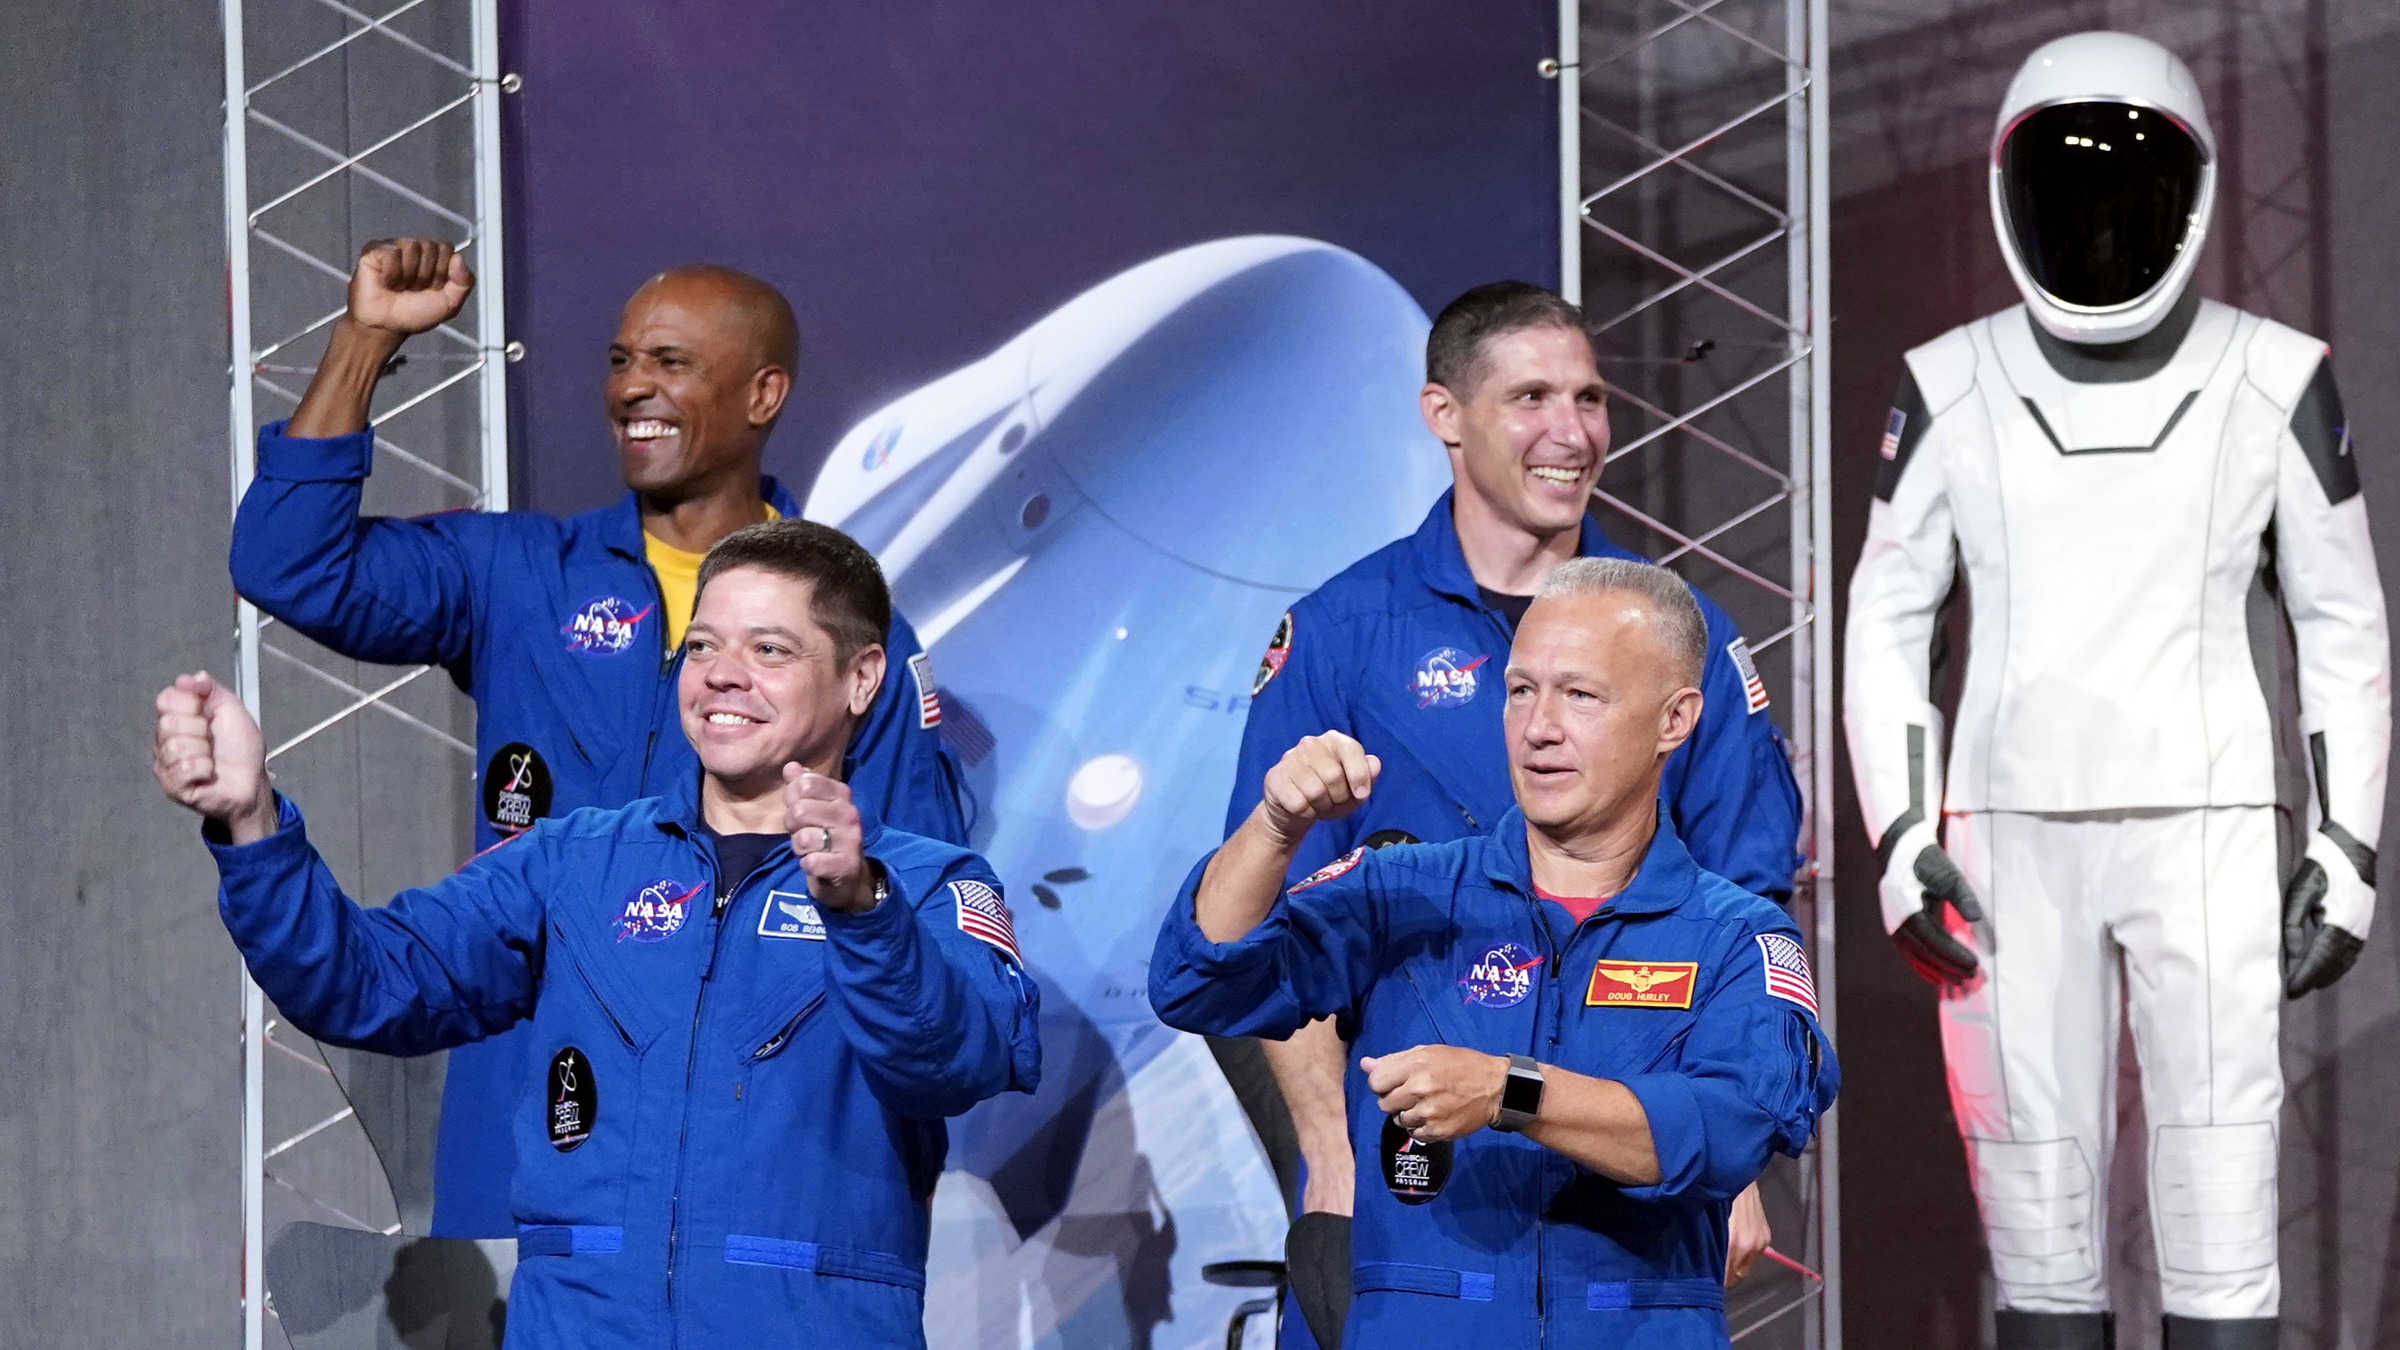 NASA named the first crews of private spacecraft 85